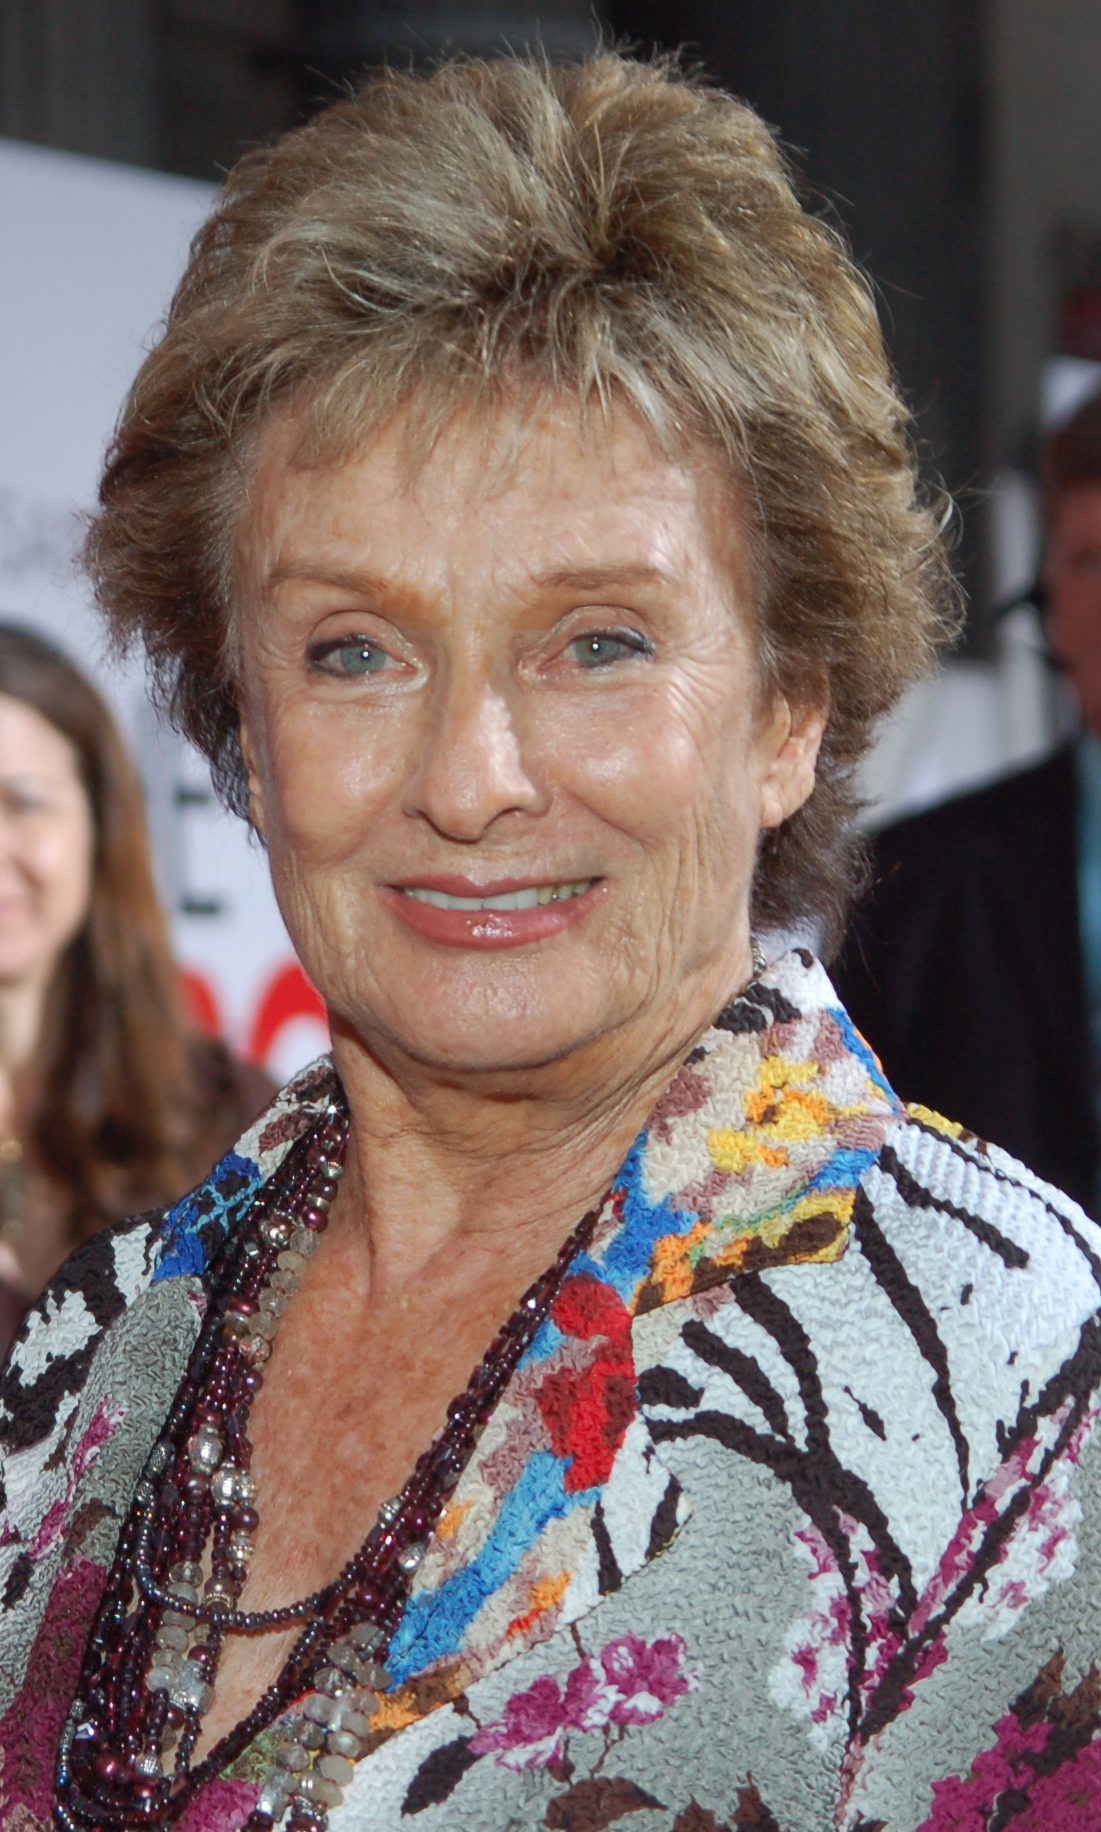 Cloris Leachman in The Last